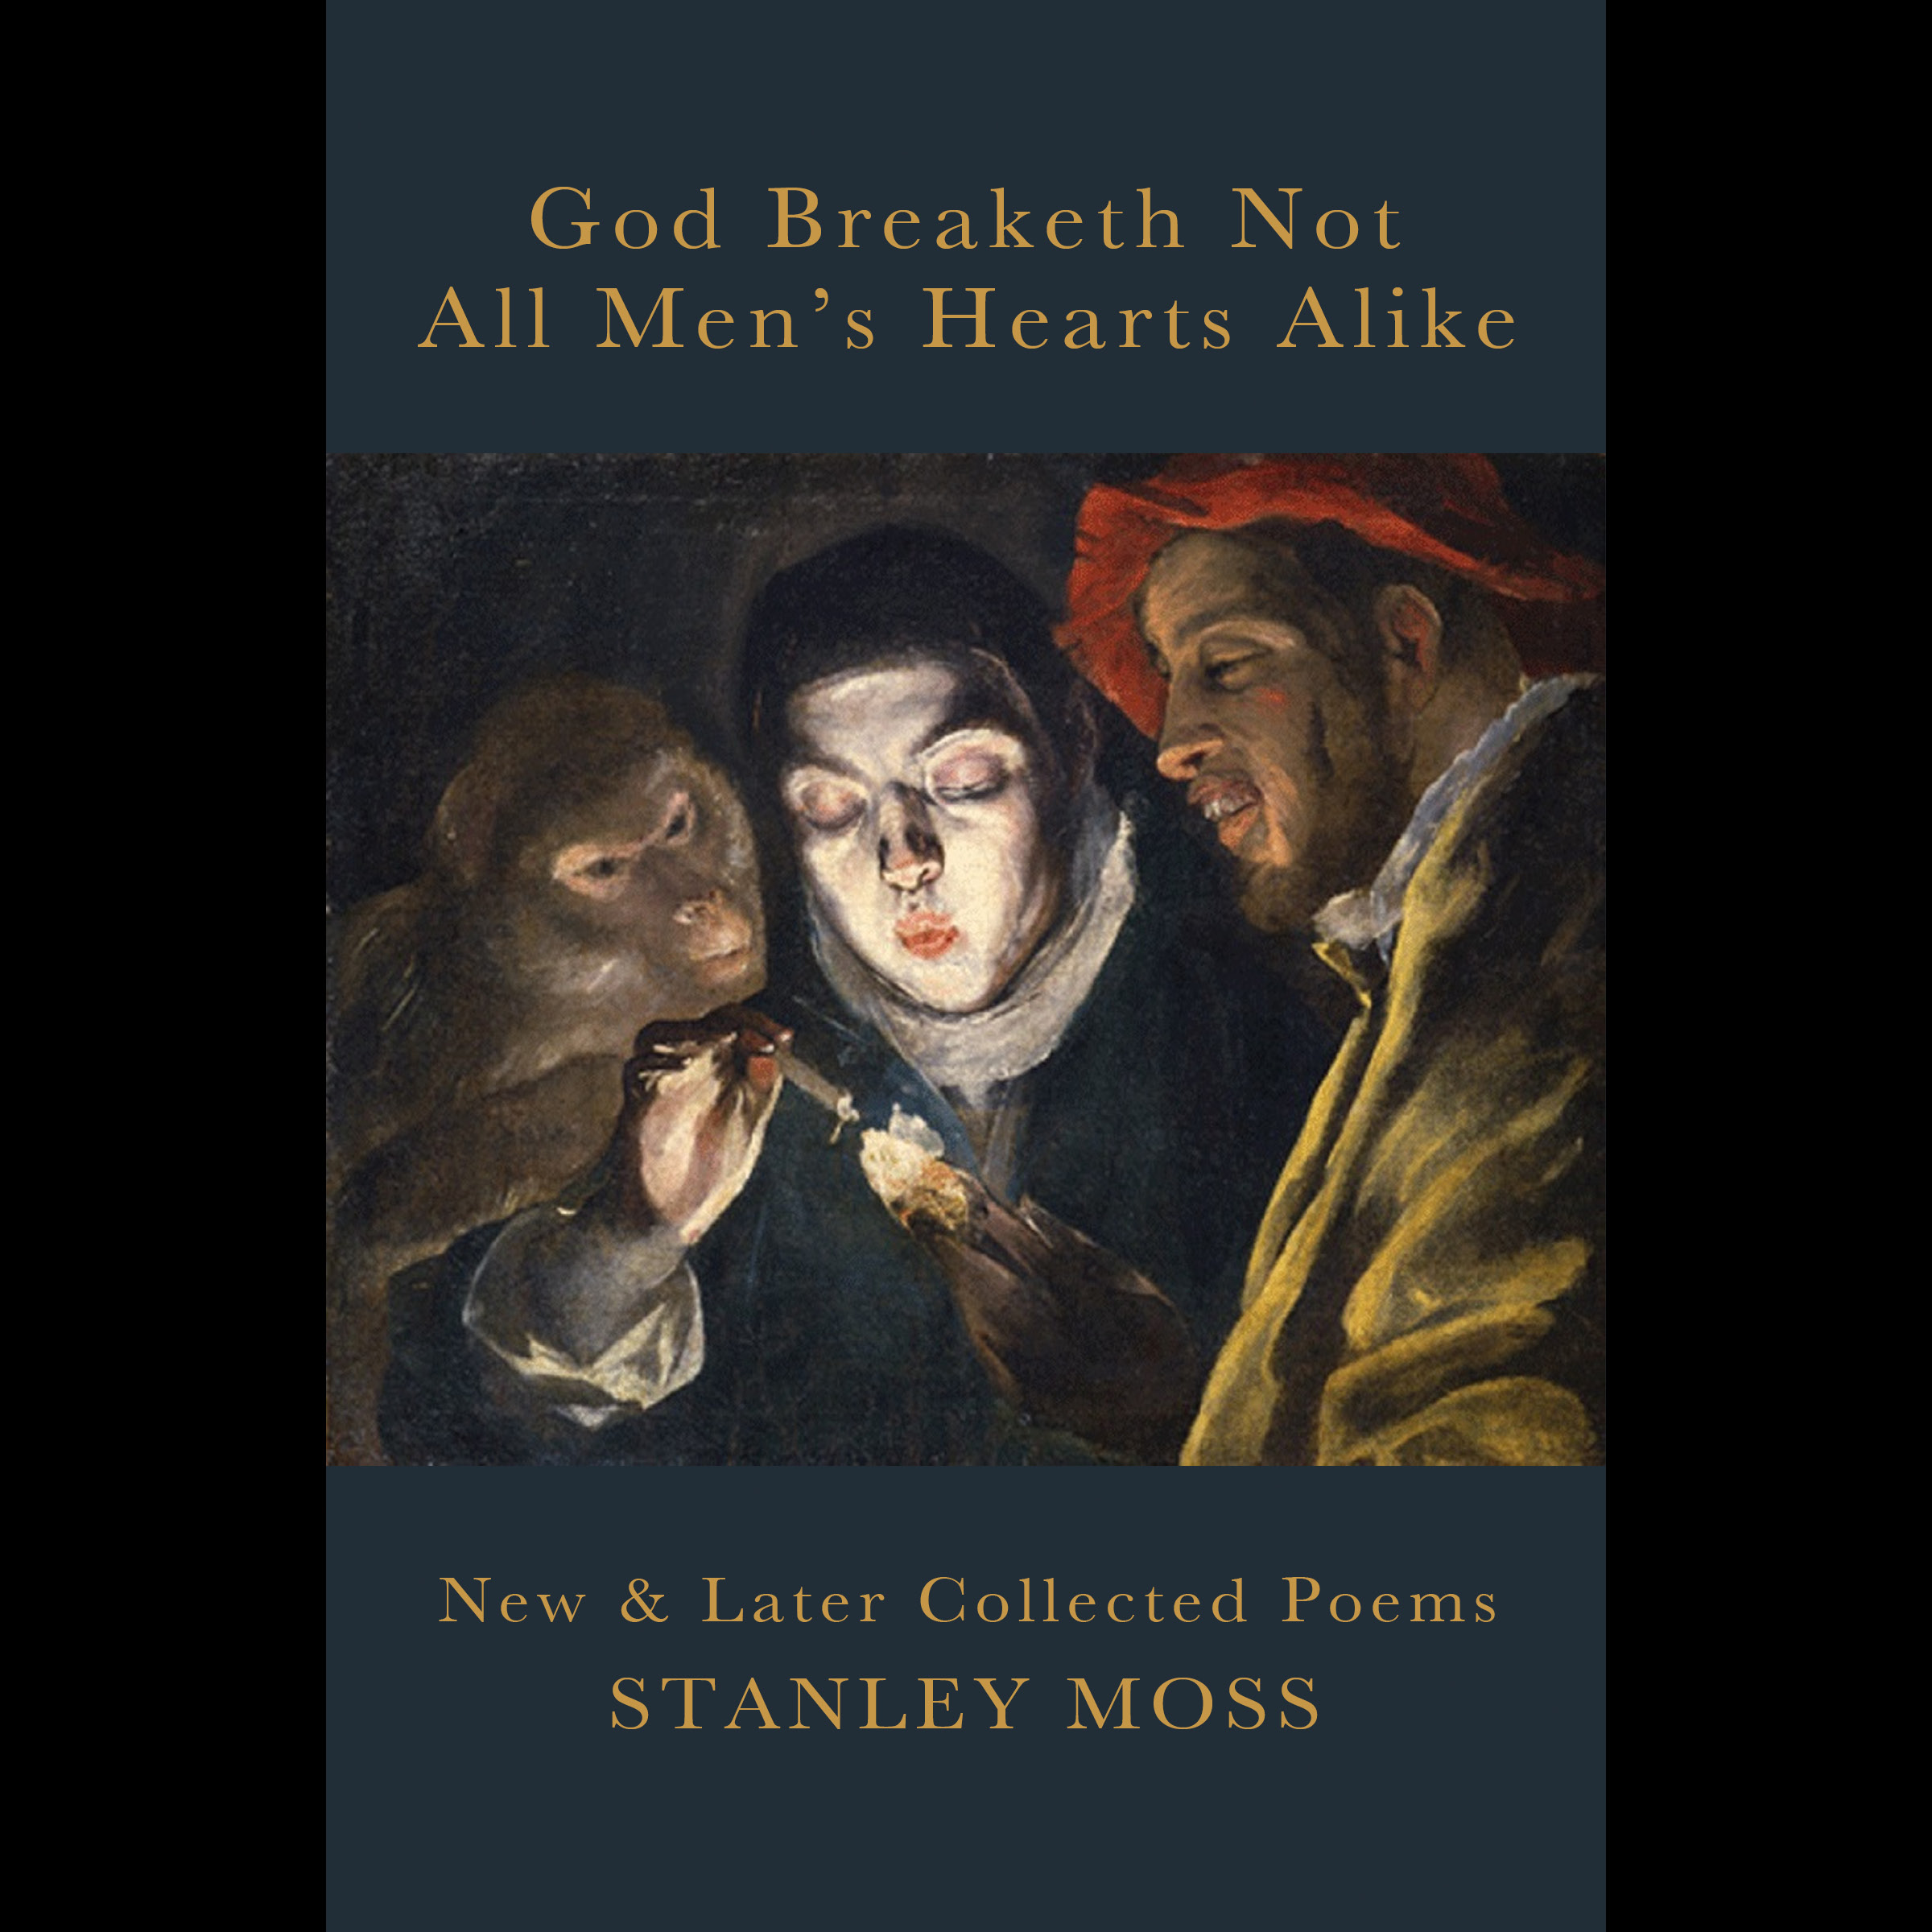 God Breaketh Not All Men's Hearts Alike (Seven Stories, 2011)